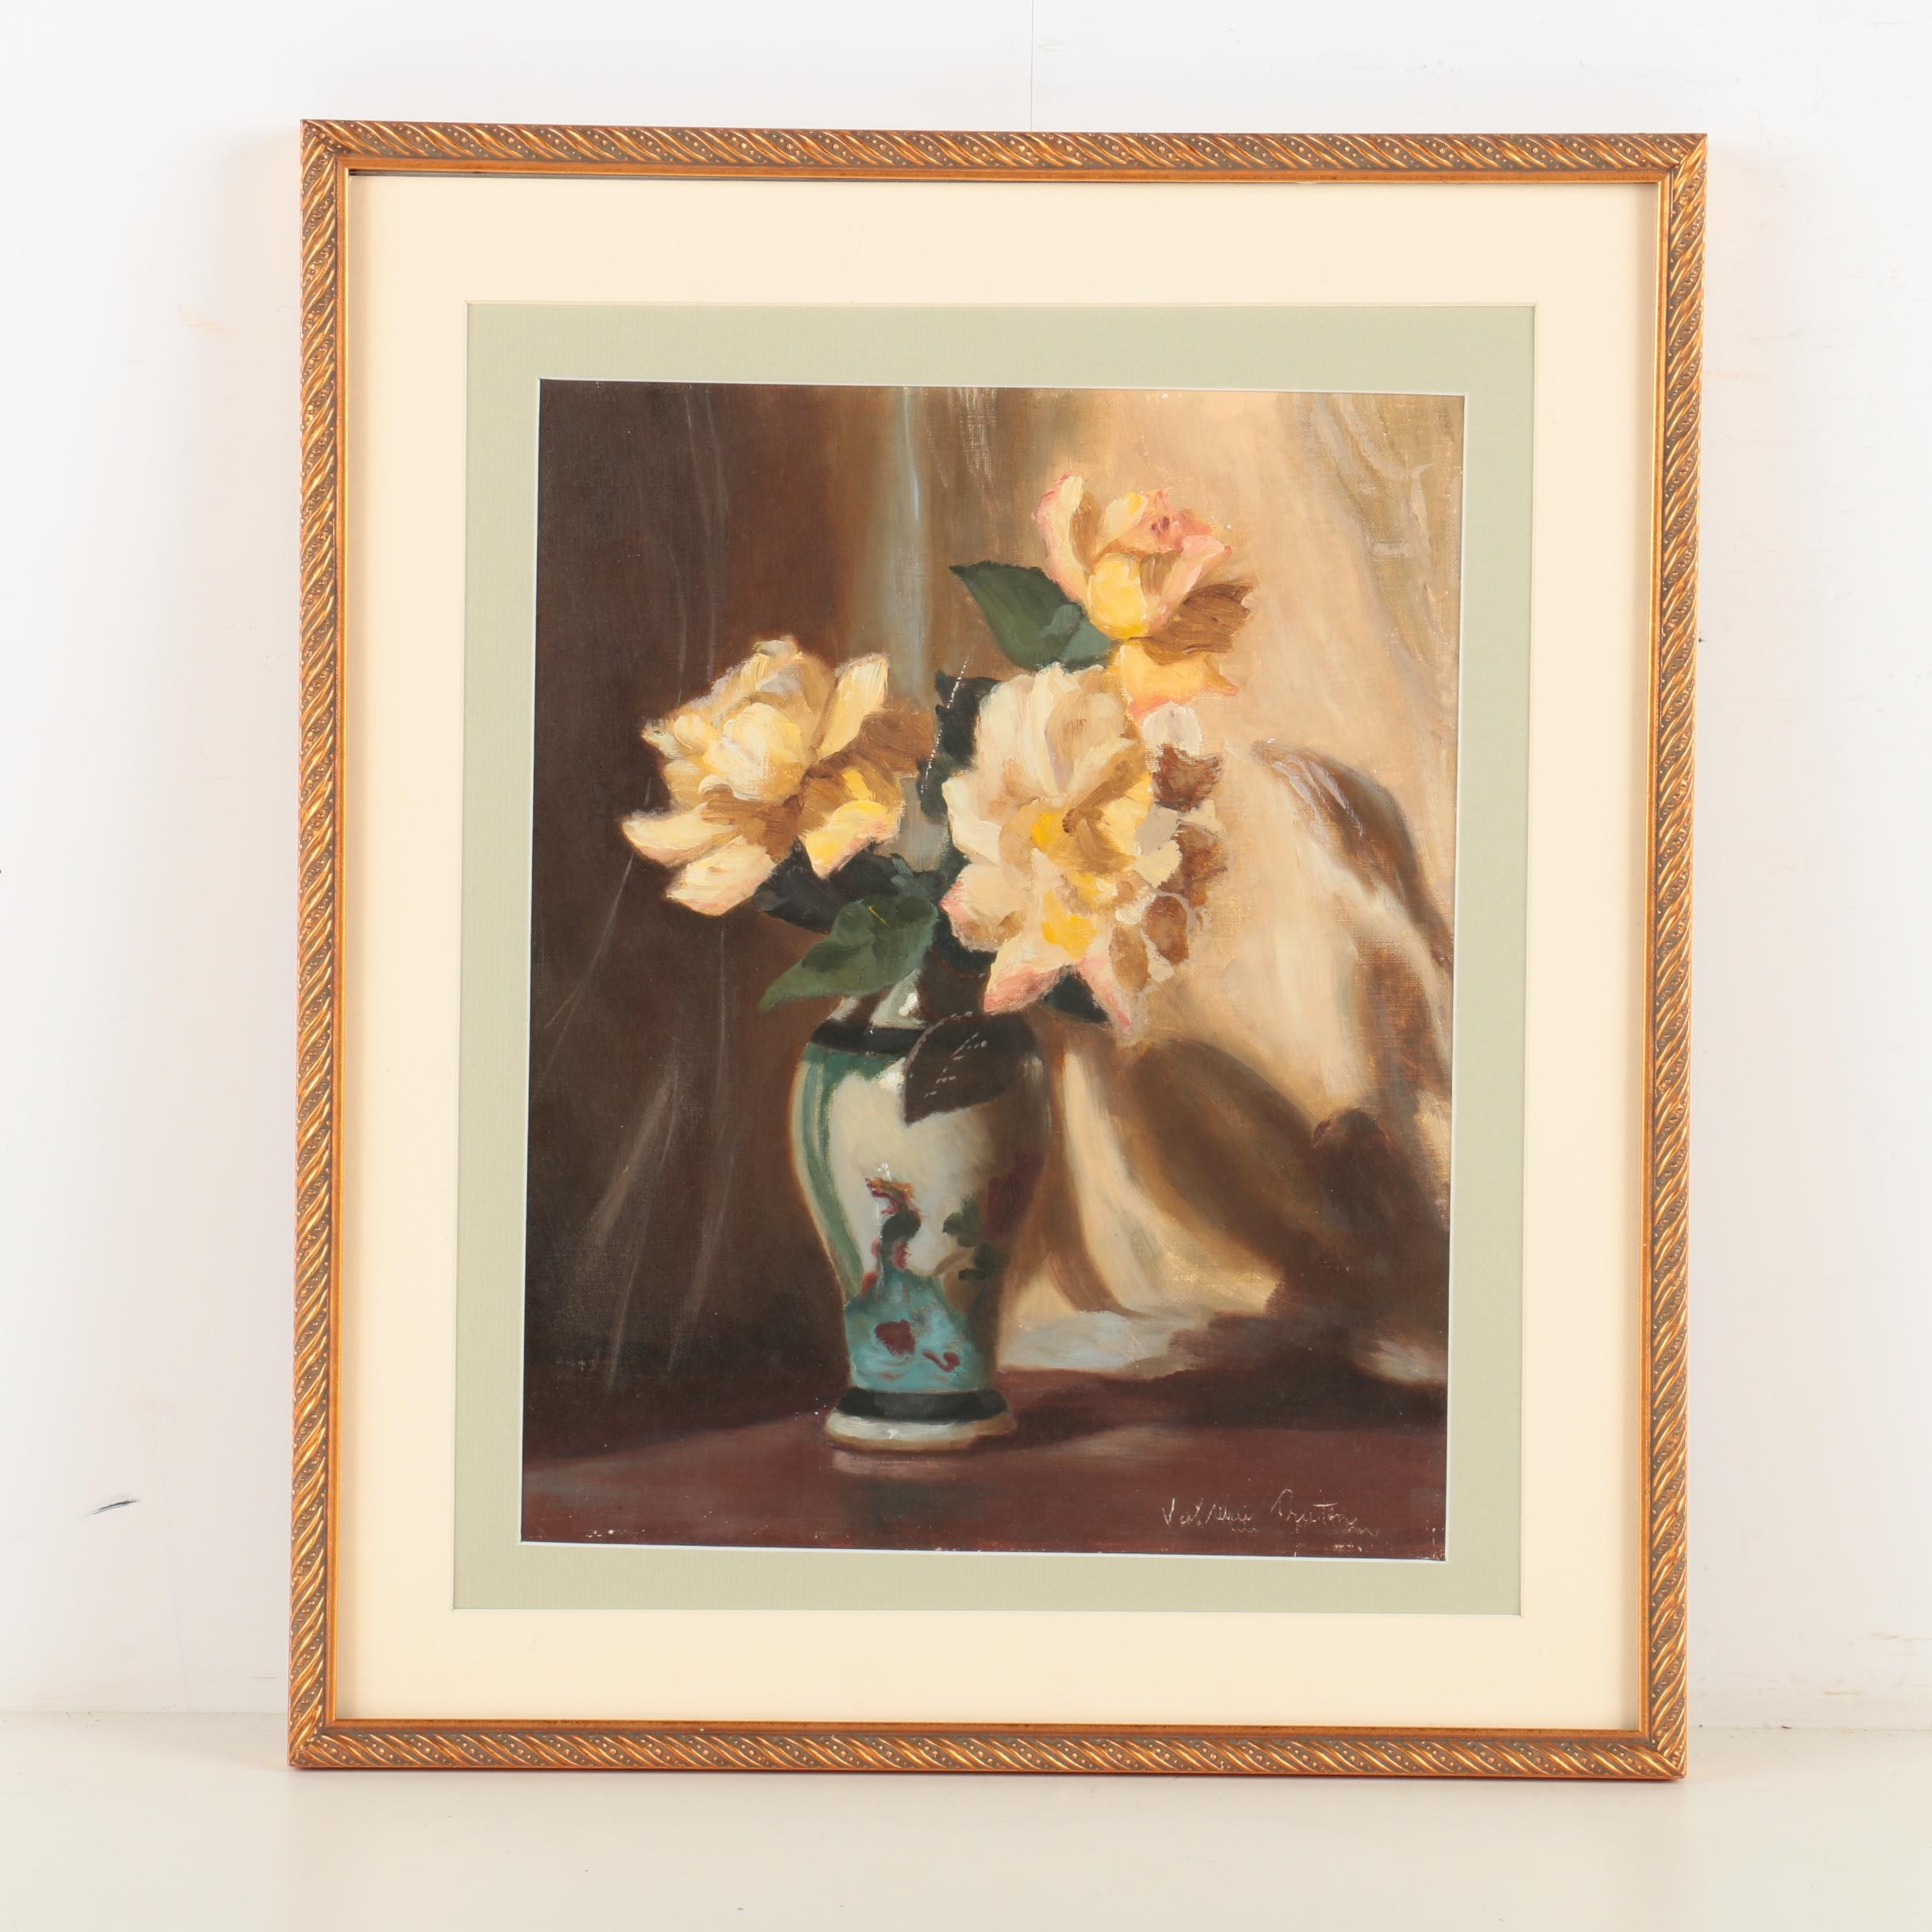 Valerie Praten Oil Painting of a Floral Still Life